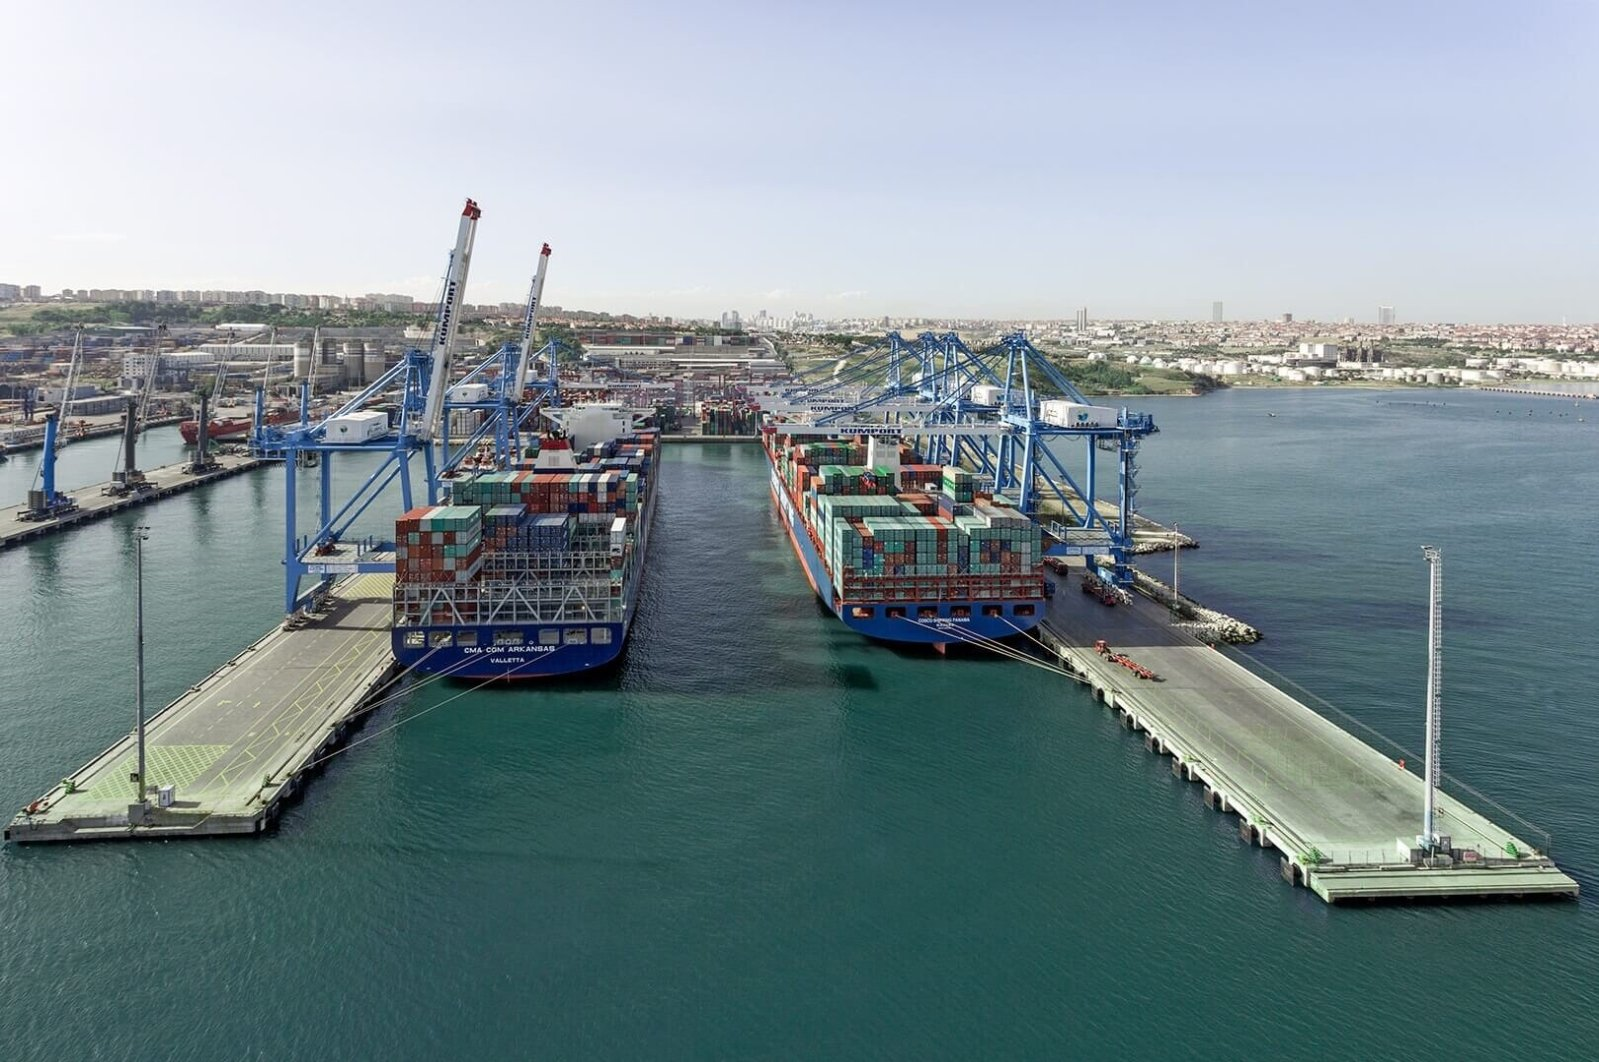 Container ships at Kumport, one of Turkey's largest ports, Istanbul. (Courtesy of Kumport)